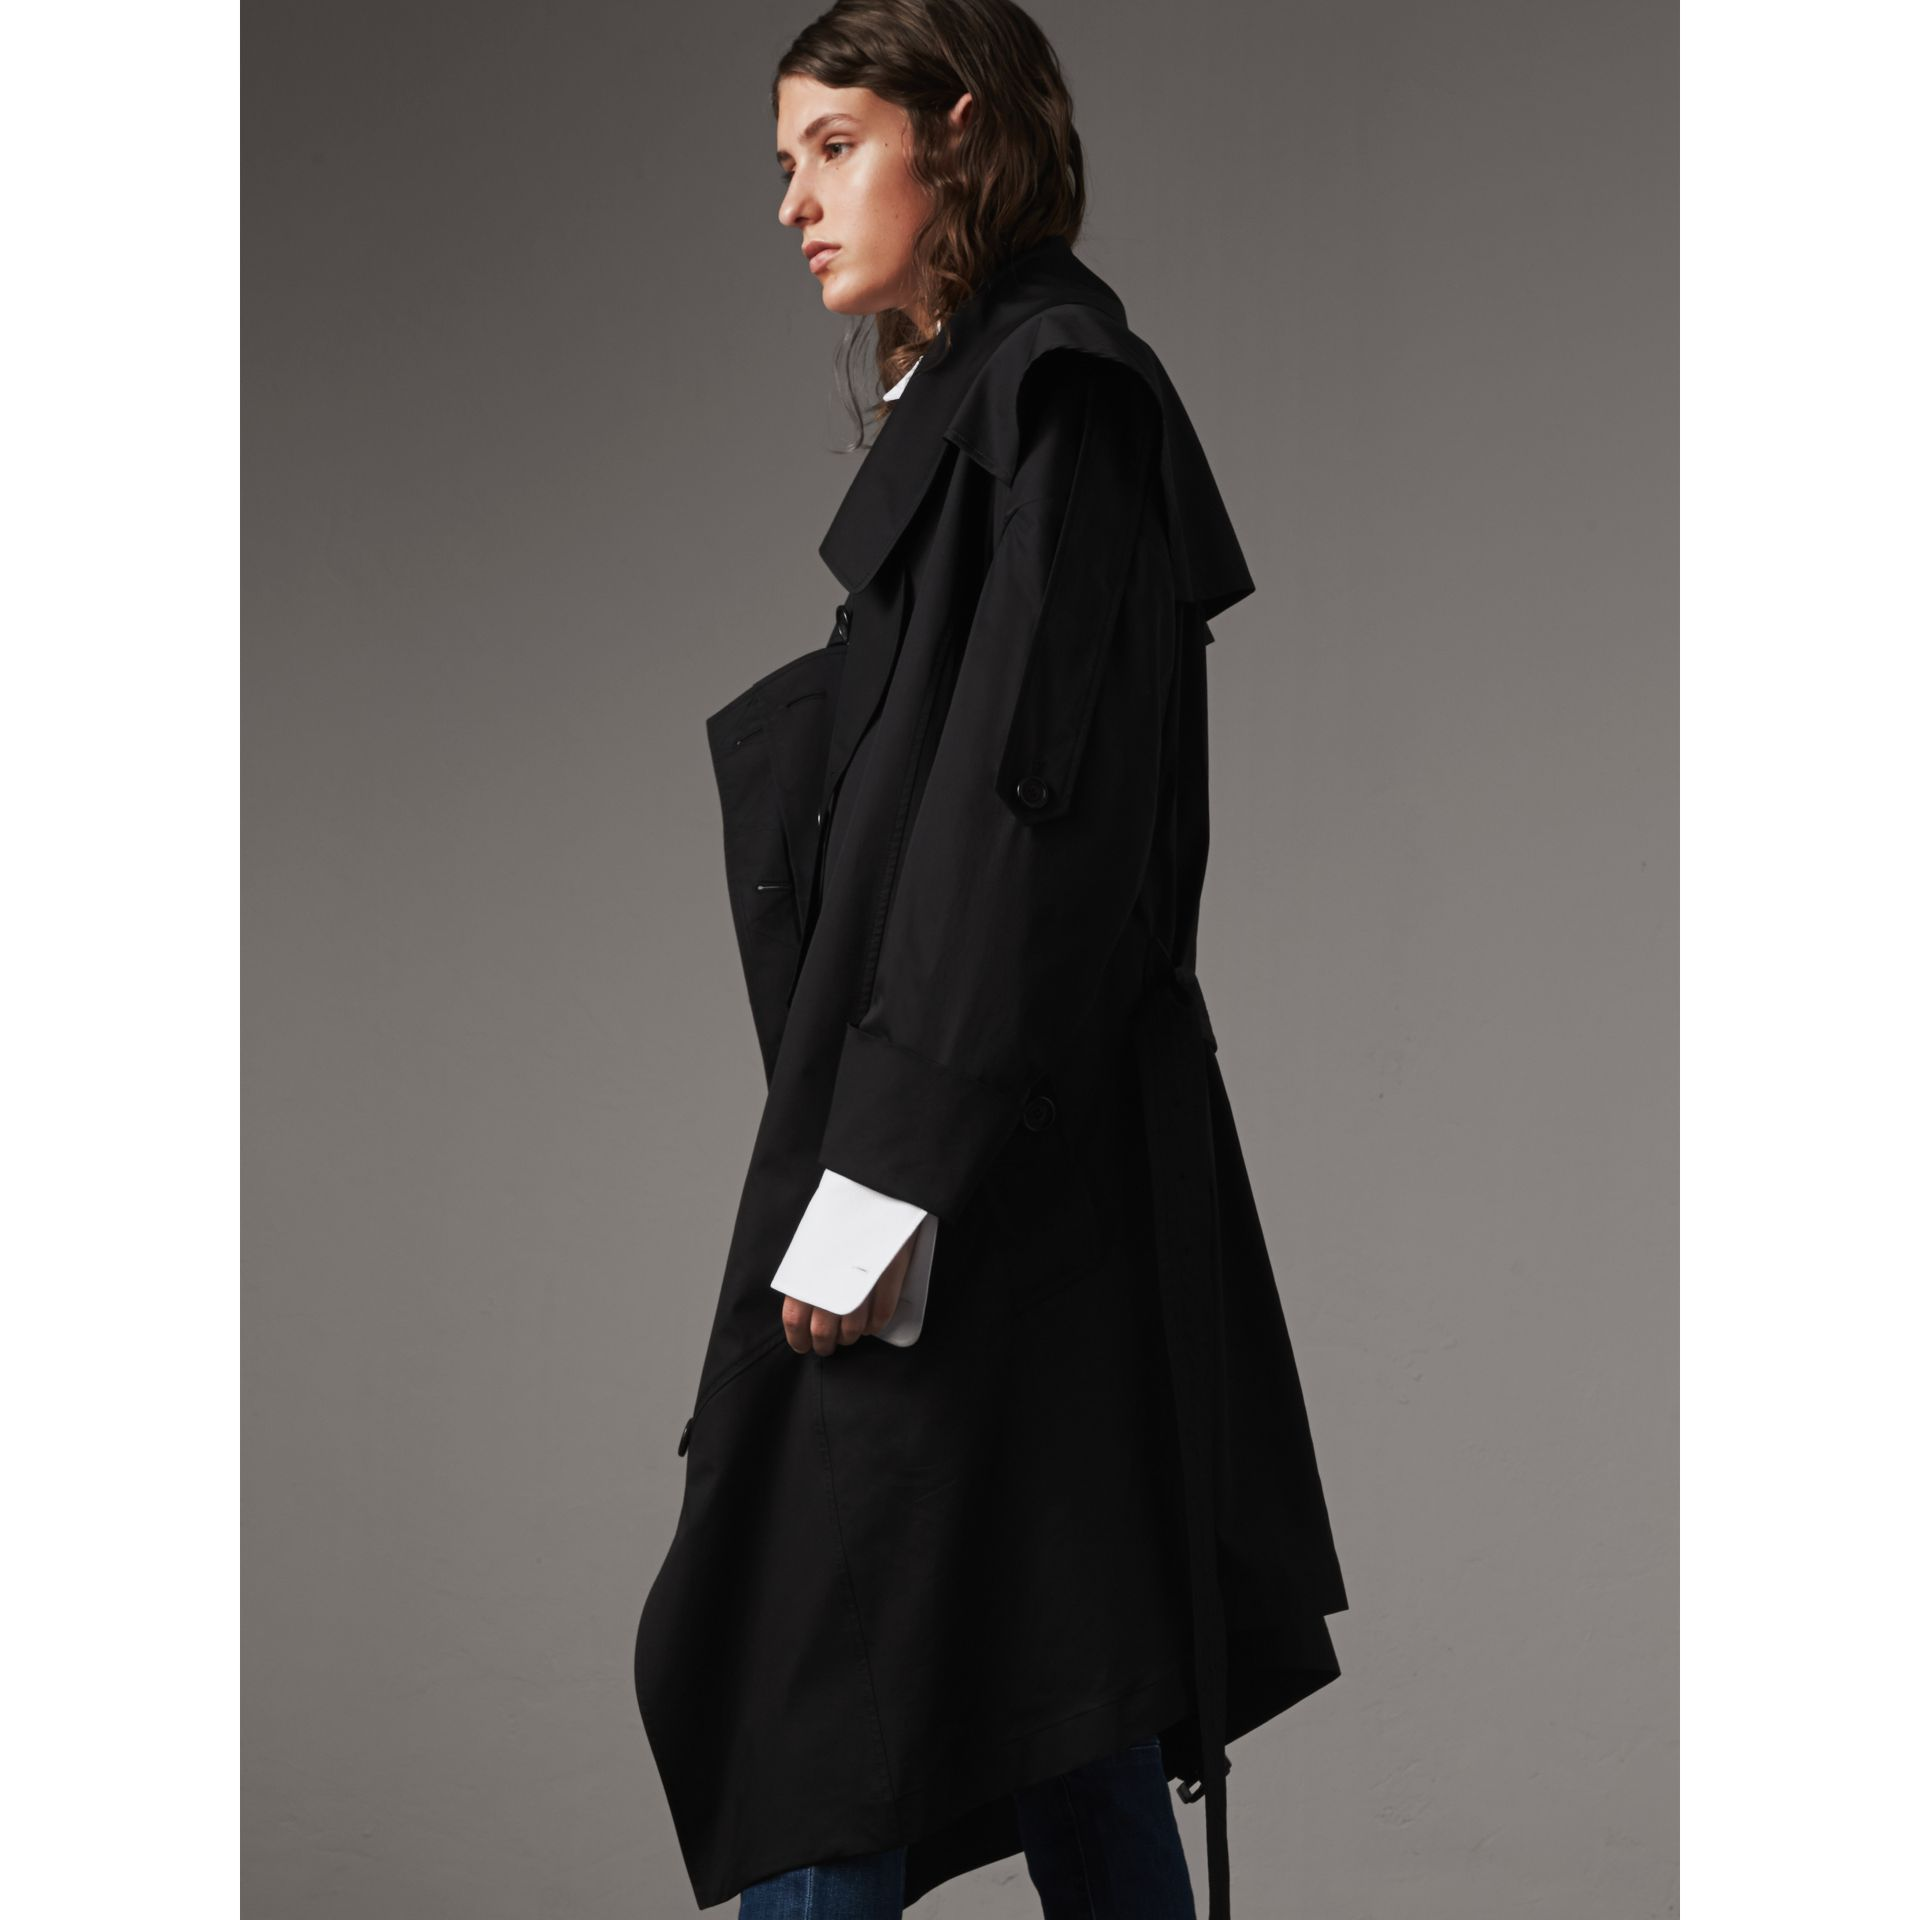 Cotton Asymmetric Trench Coat in Black - Women | Burberry Canada - gallery image 6